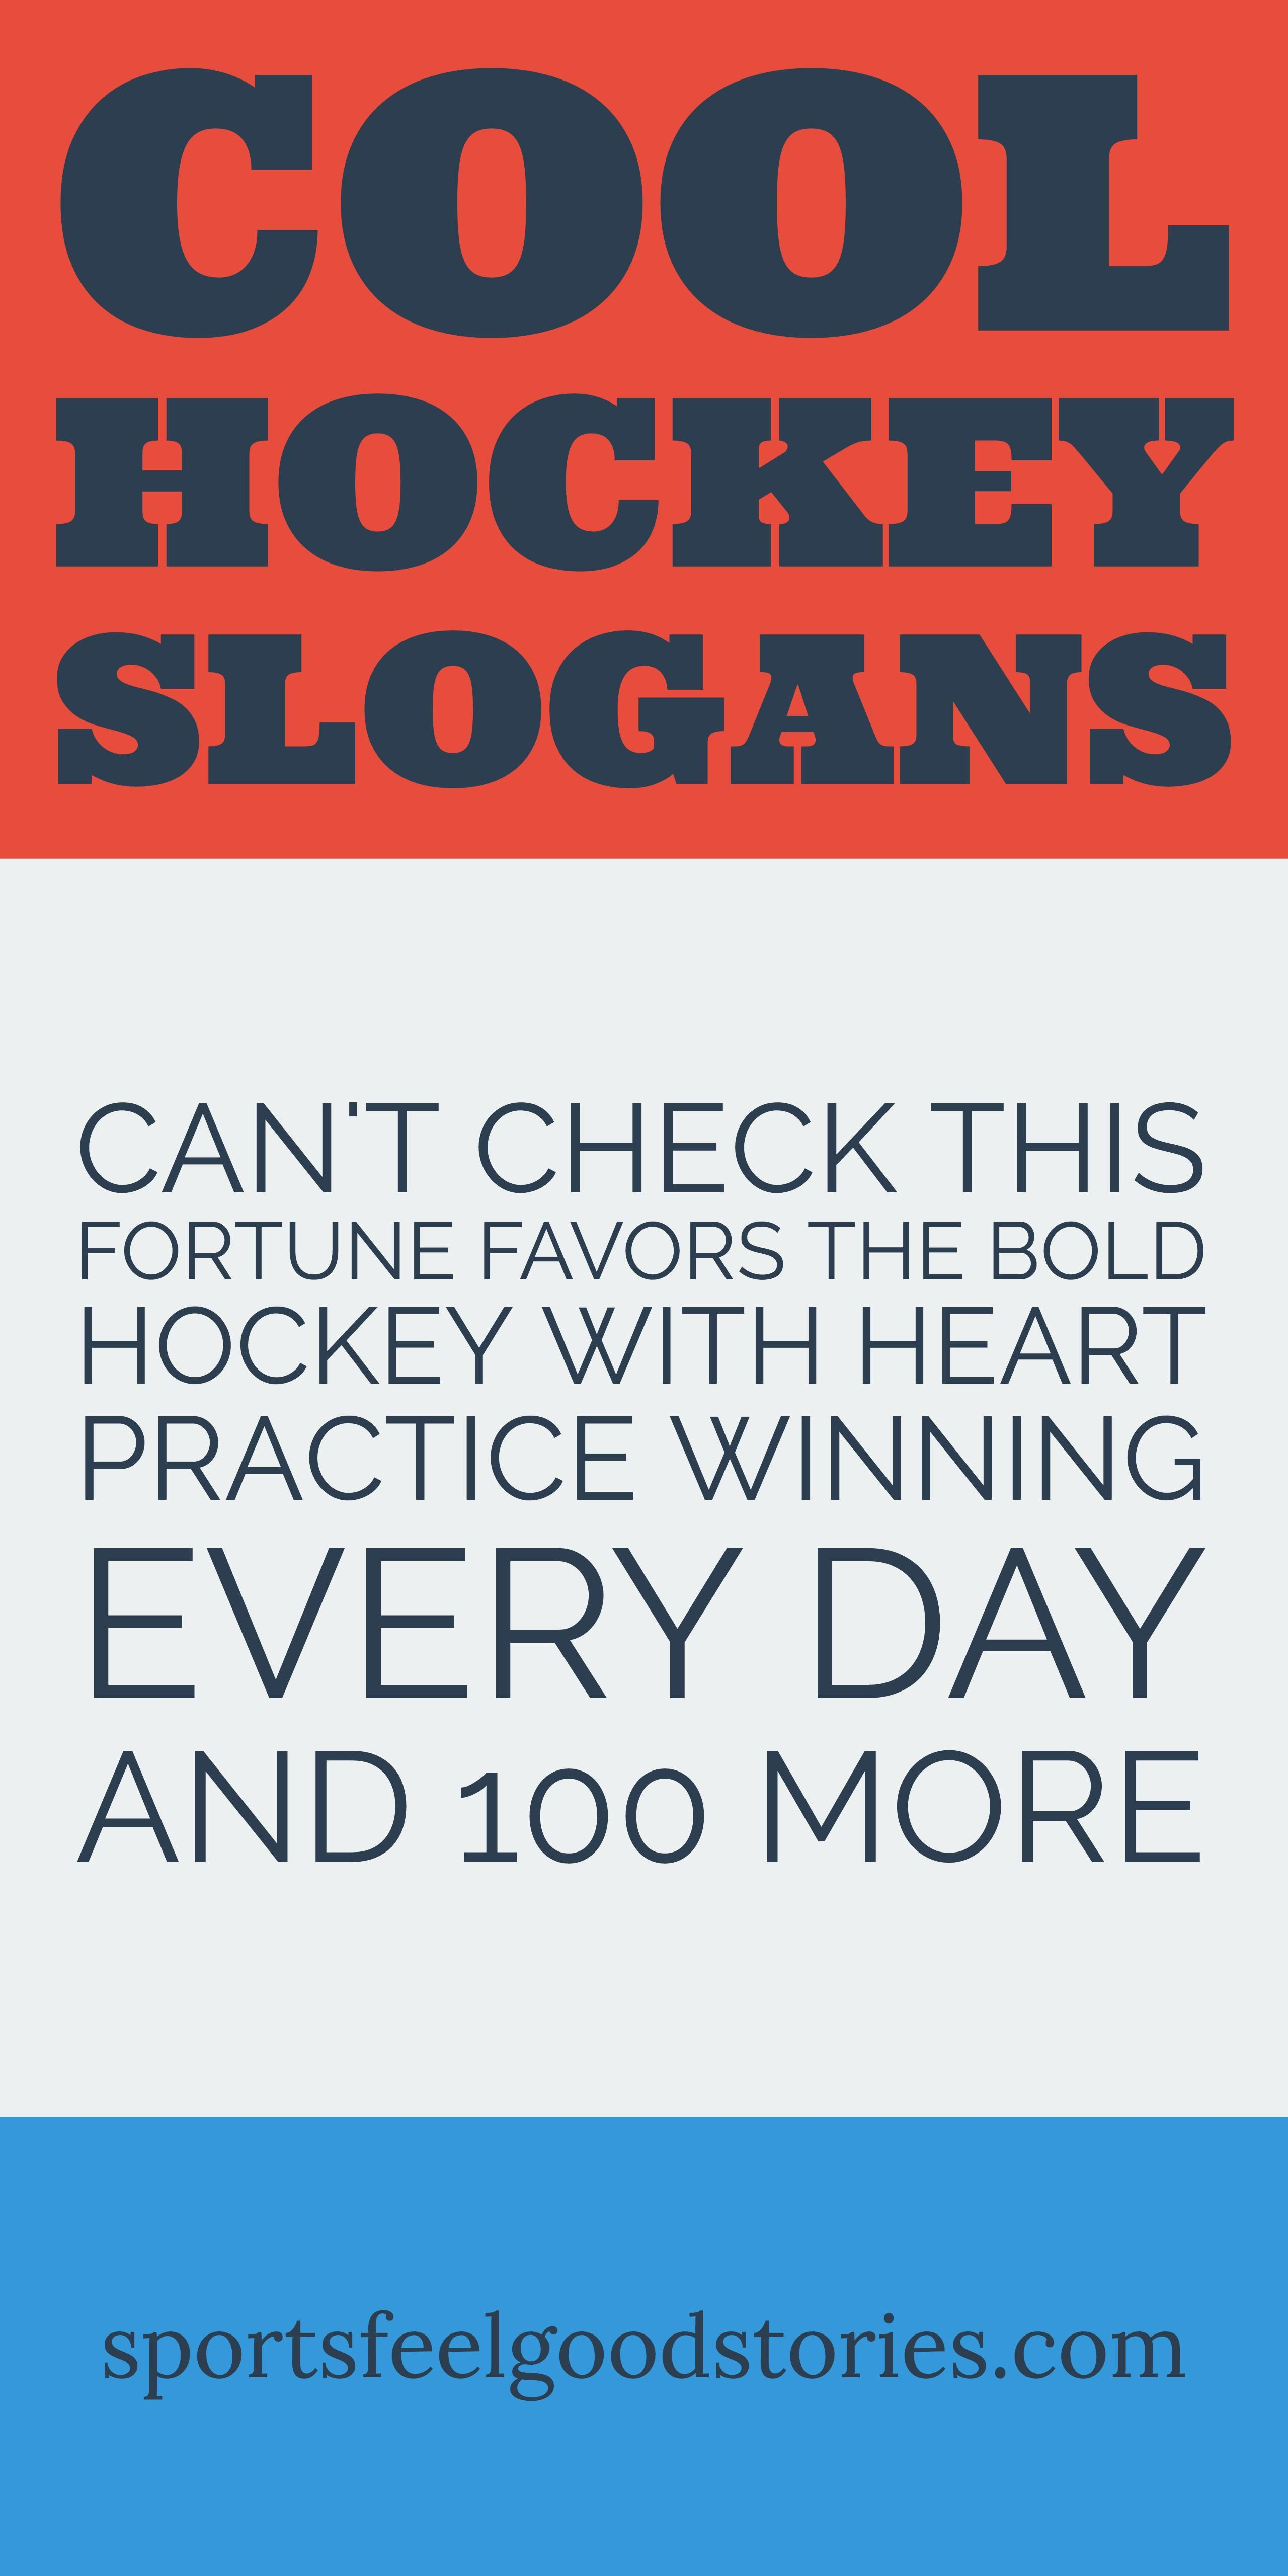 Hockey slogans and sayings for youth teams. Funny, cool